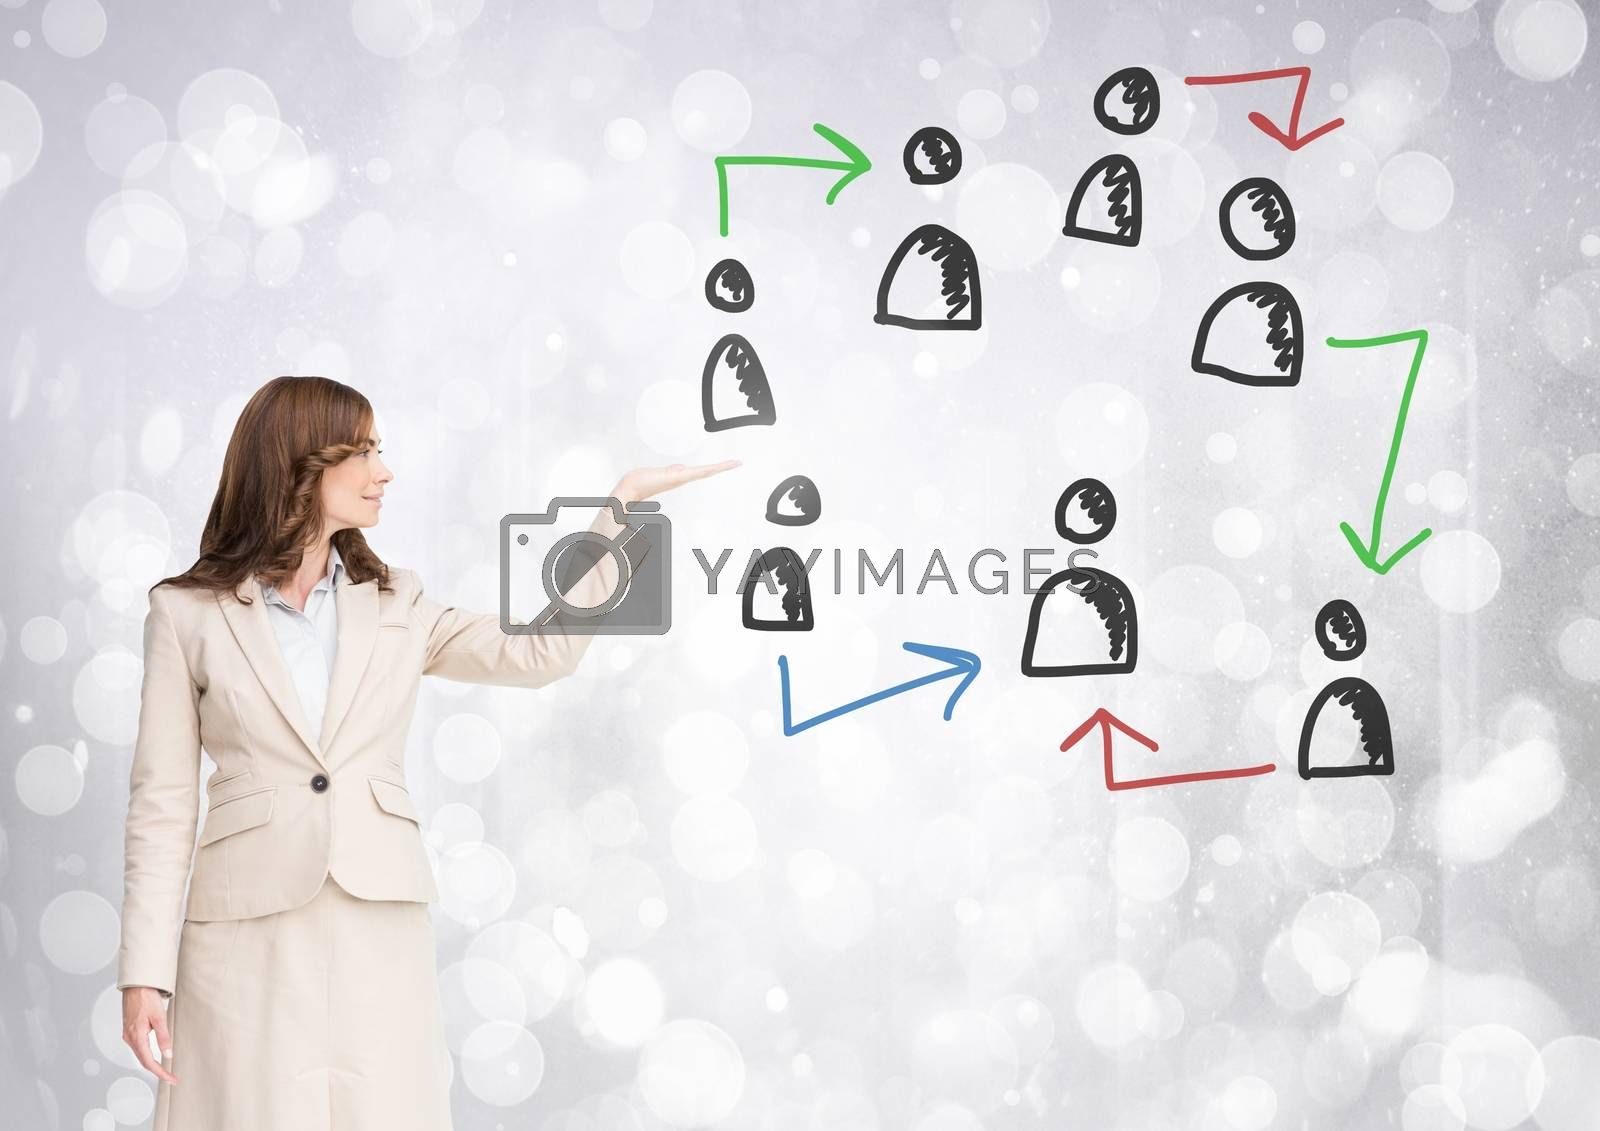 Digital composite of Hand-drawn people profile icons with open hand of businesswoman